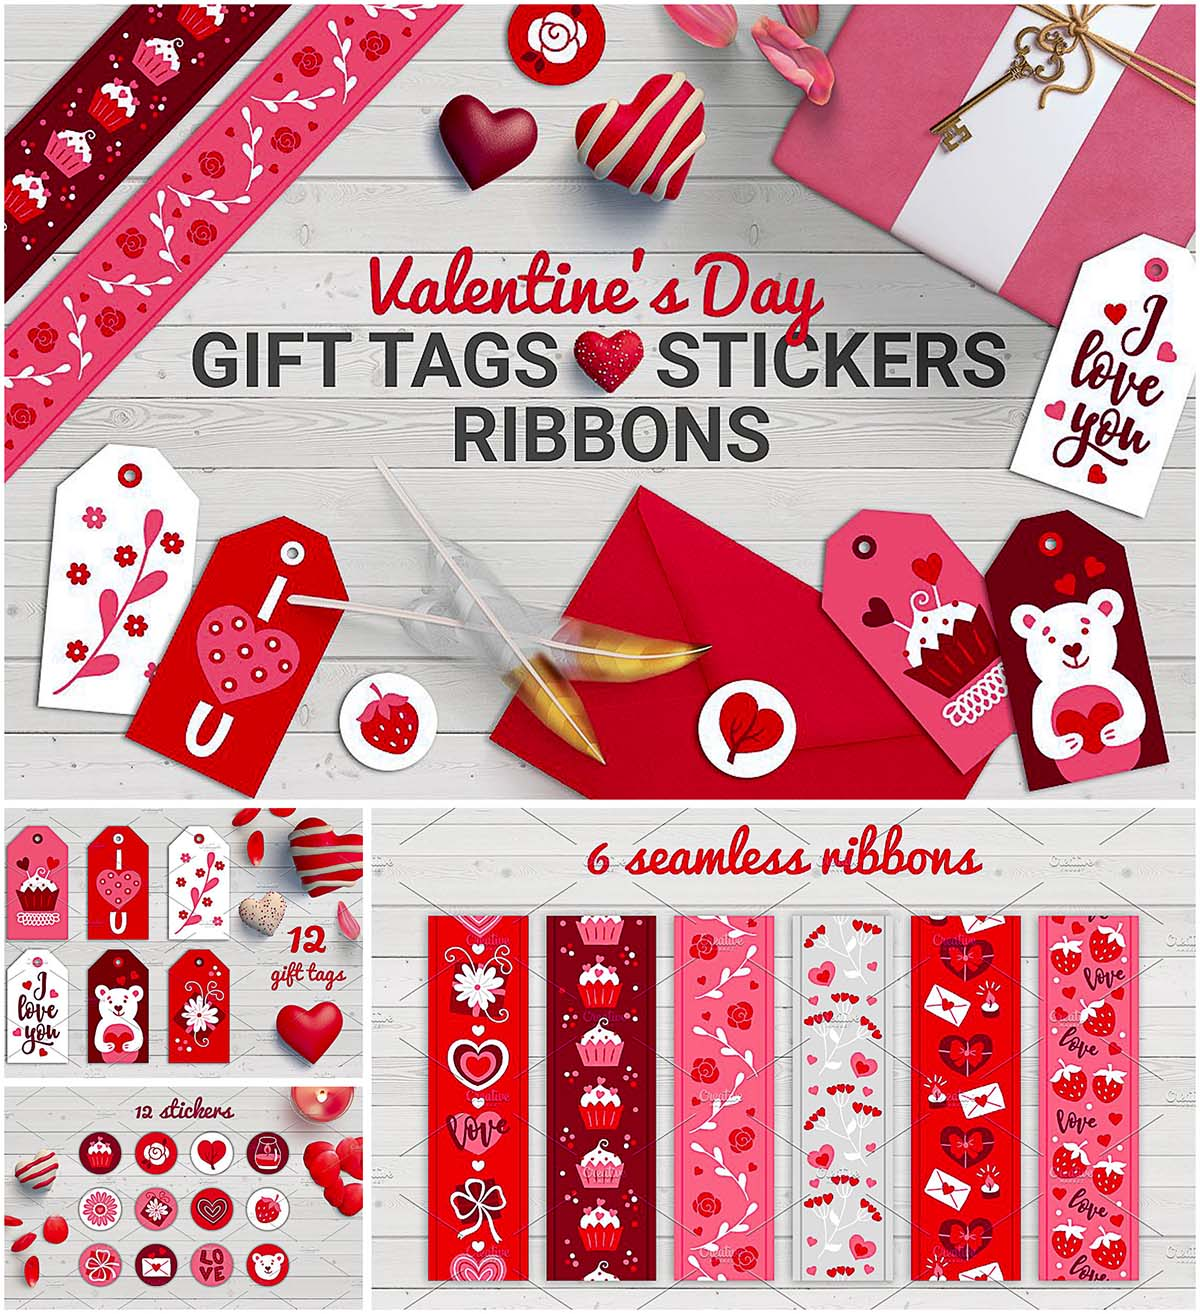 holiday gift love ribbon - photo #26